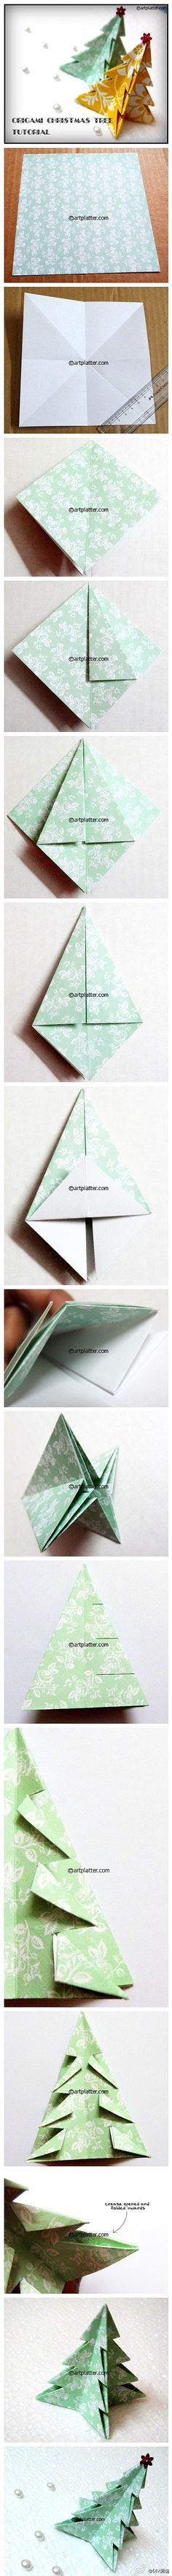 Origami paper art # Liangtu hands folded origami Christmas tree tutorial # friends ~ ~ ~ (from a few minutes . Origami Christmas Tree, Noel Christmas, Christmas Ornaments, Origami Xmas, Oragami, Xmas Trees, Unique Christmas Gifts, All Things Christmas, Christmas Projects